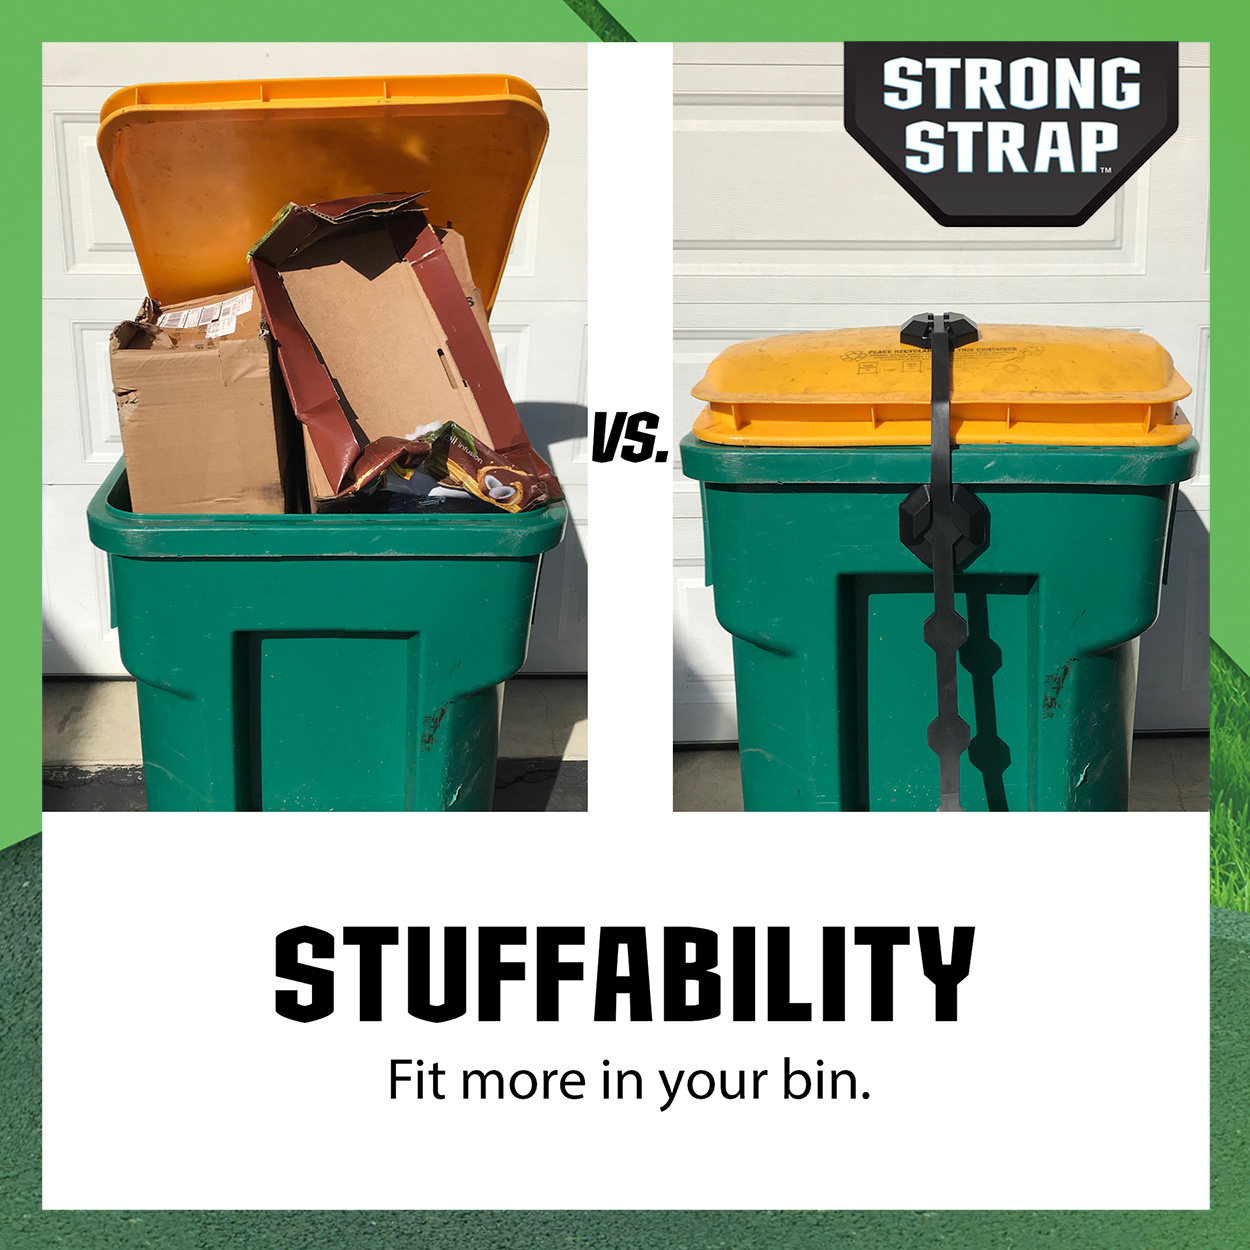 An open overflowing bins vs. the same bin with a Strong Strap and the can's lid is sealed